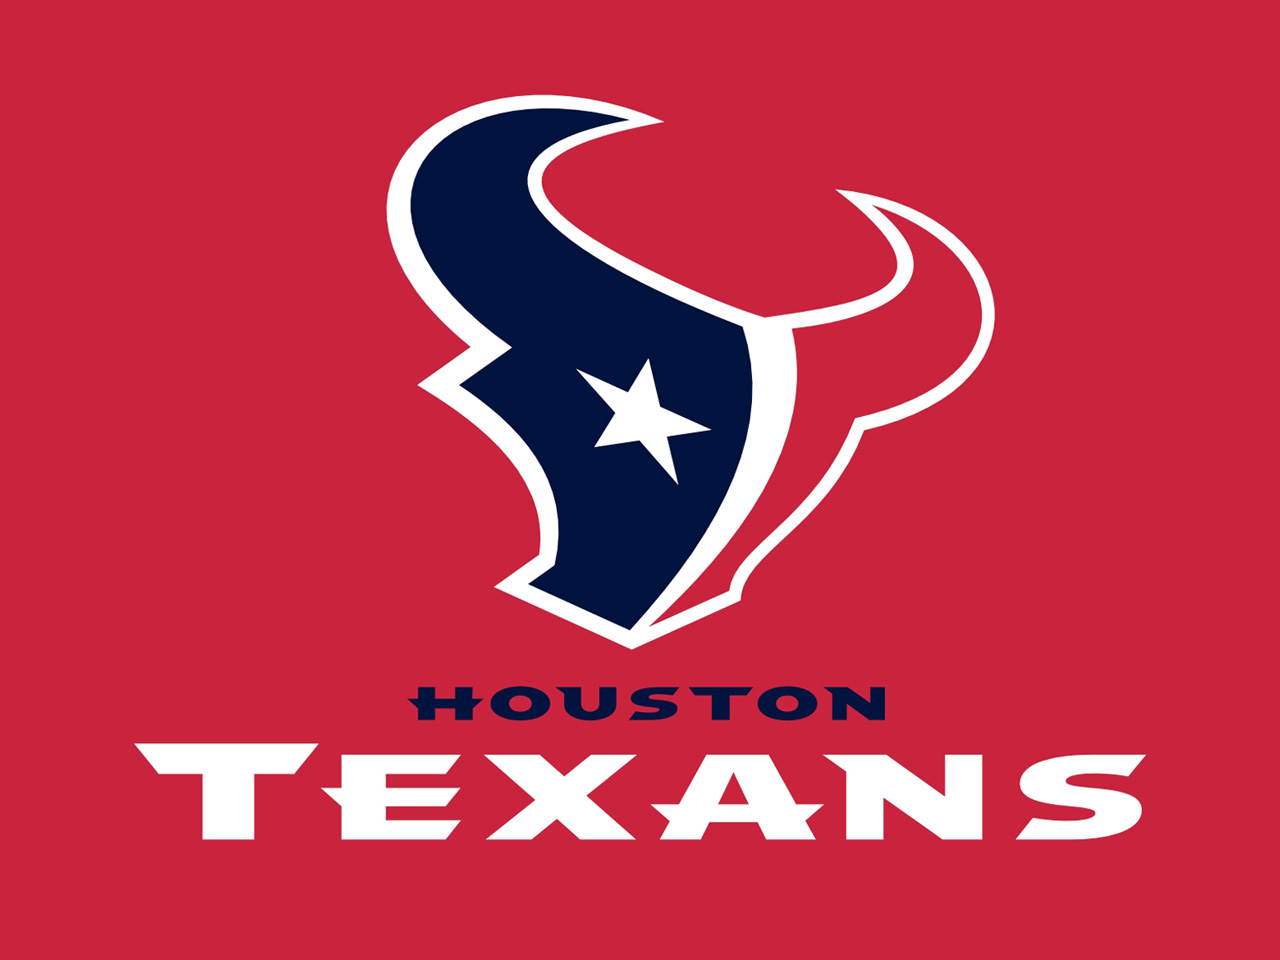 houston texans wallpaper iphone  HD Photo Wallpaper Collection HD 1280x960